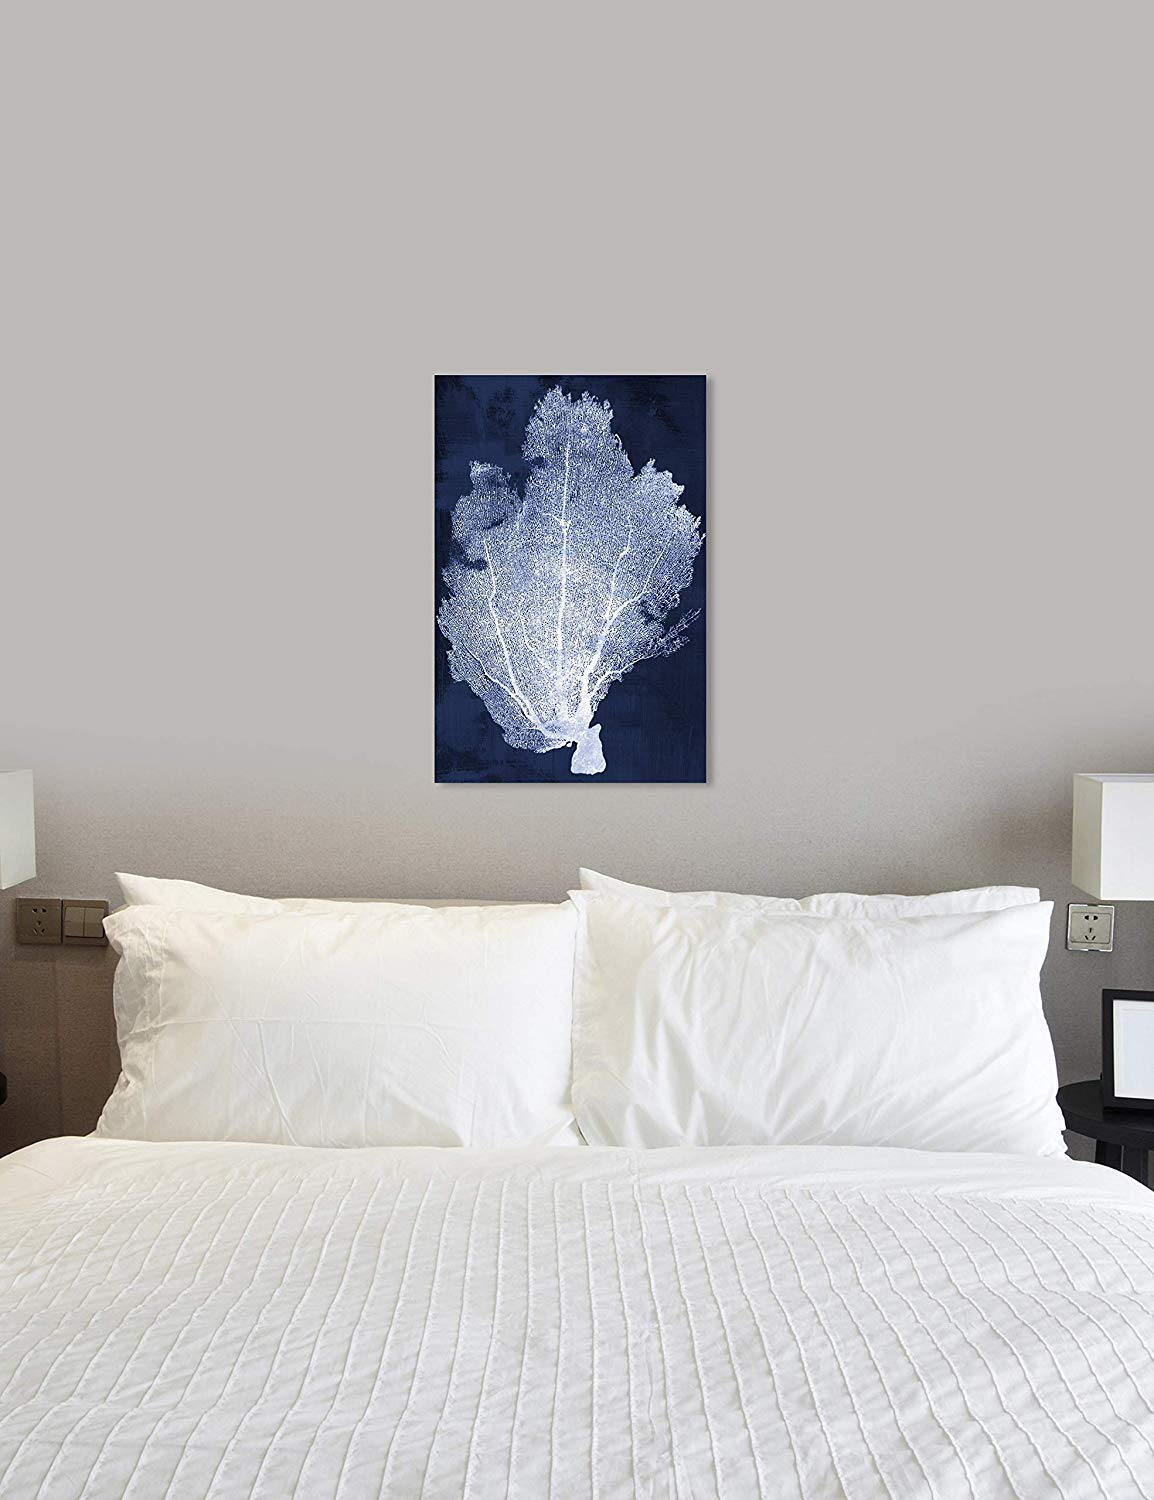 13285/_24x36/_CANV/_XHD Oliver Gal Coral Fan Cyanotype 2 The Nautical Wall Art Decor Collection Contemporary Premium Canvas Art Print The Oliver Gal Artist Co